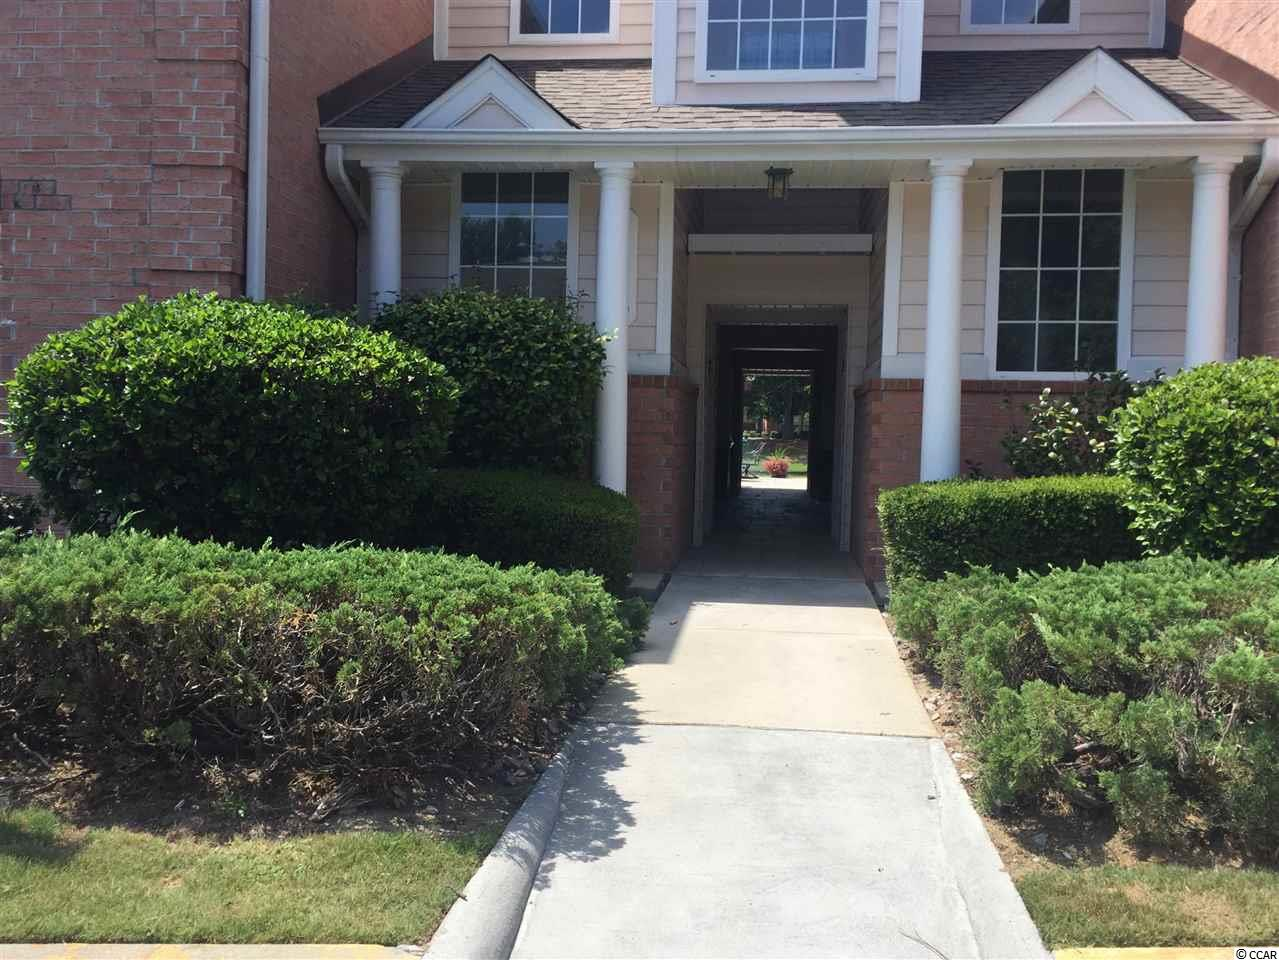 Condo in RIVERWOOD : Murrells Inlet South Carolina